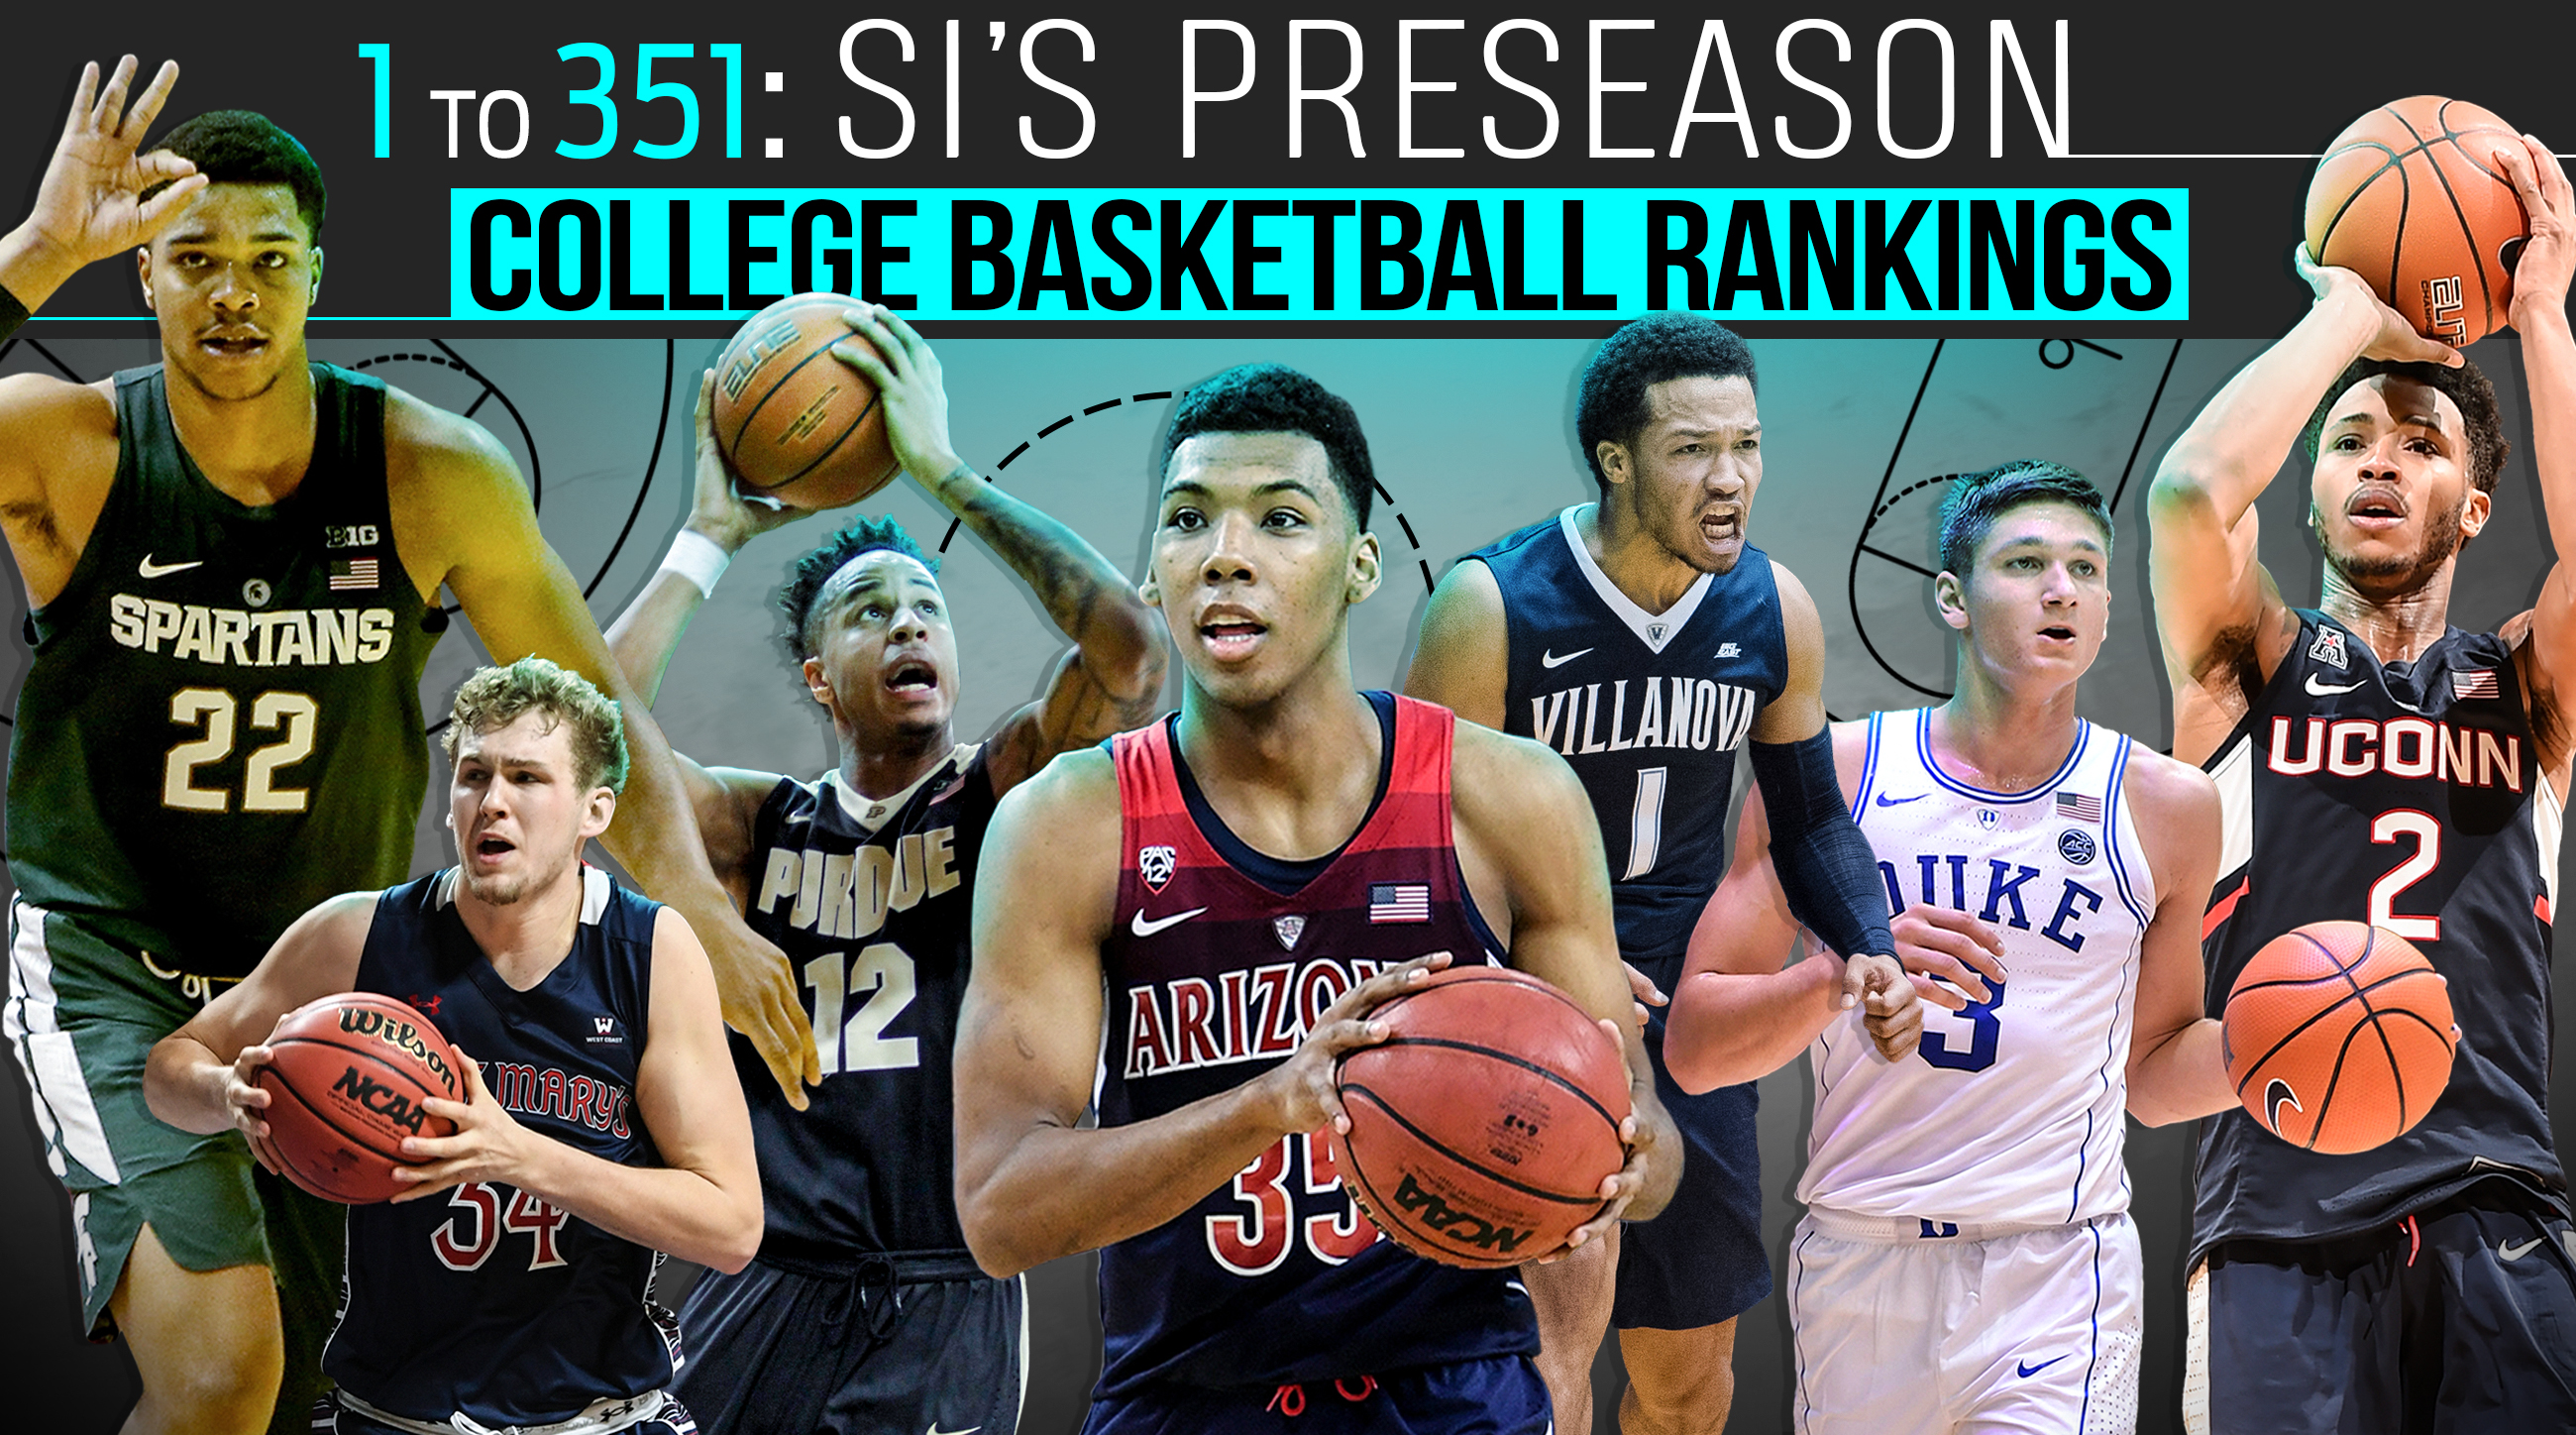 College basketball rankings: All 351 Division I teams | SI.com